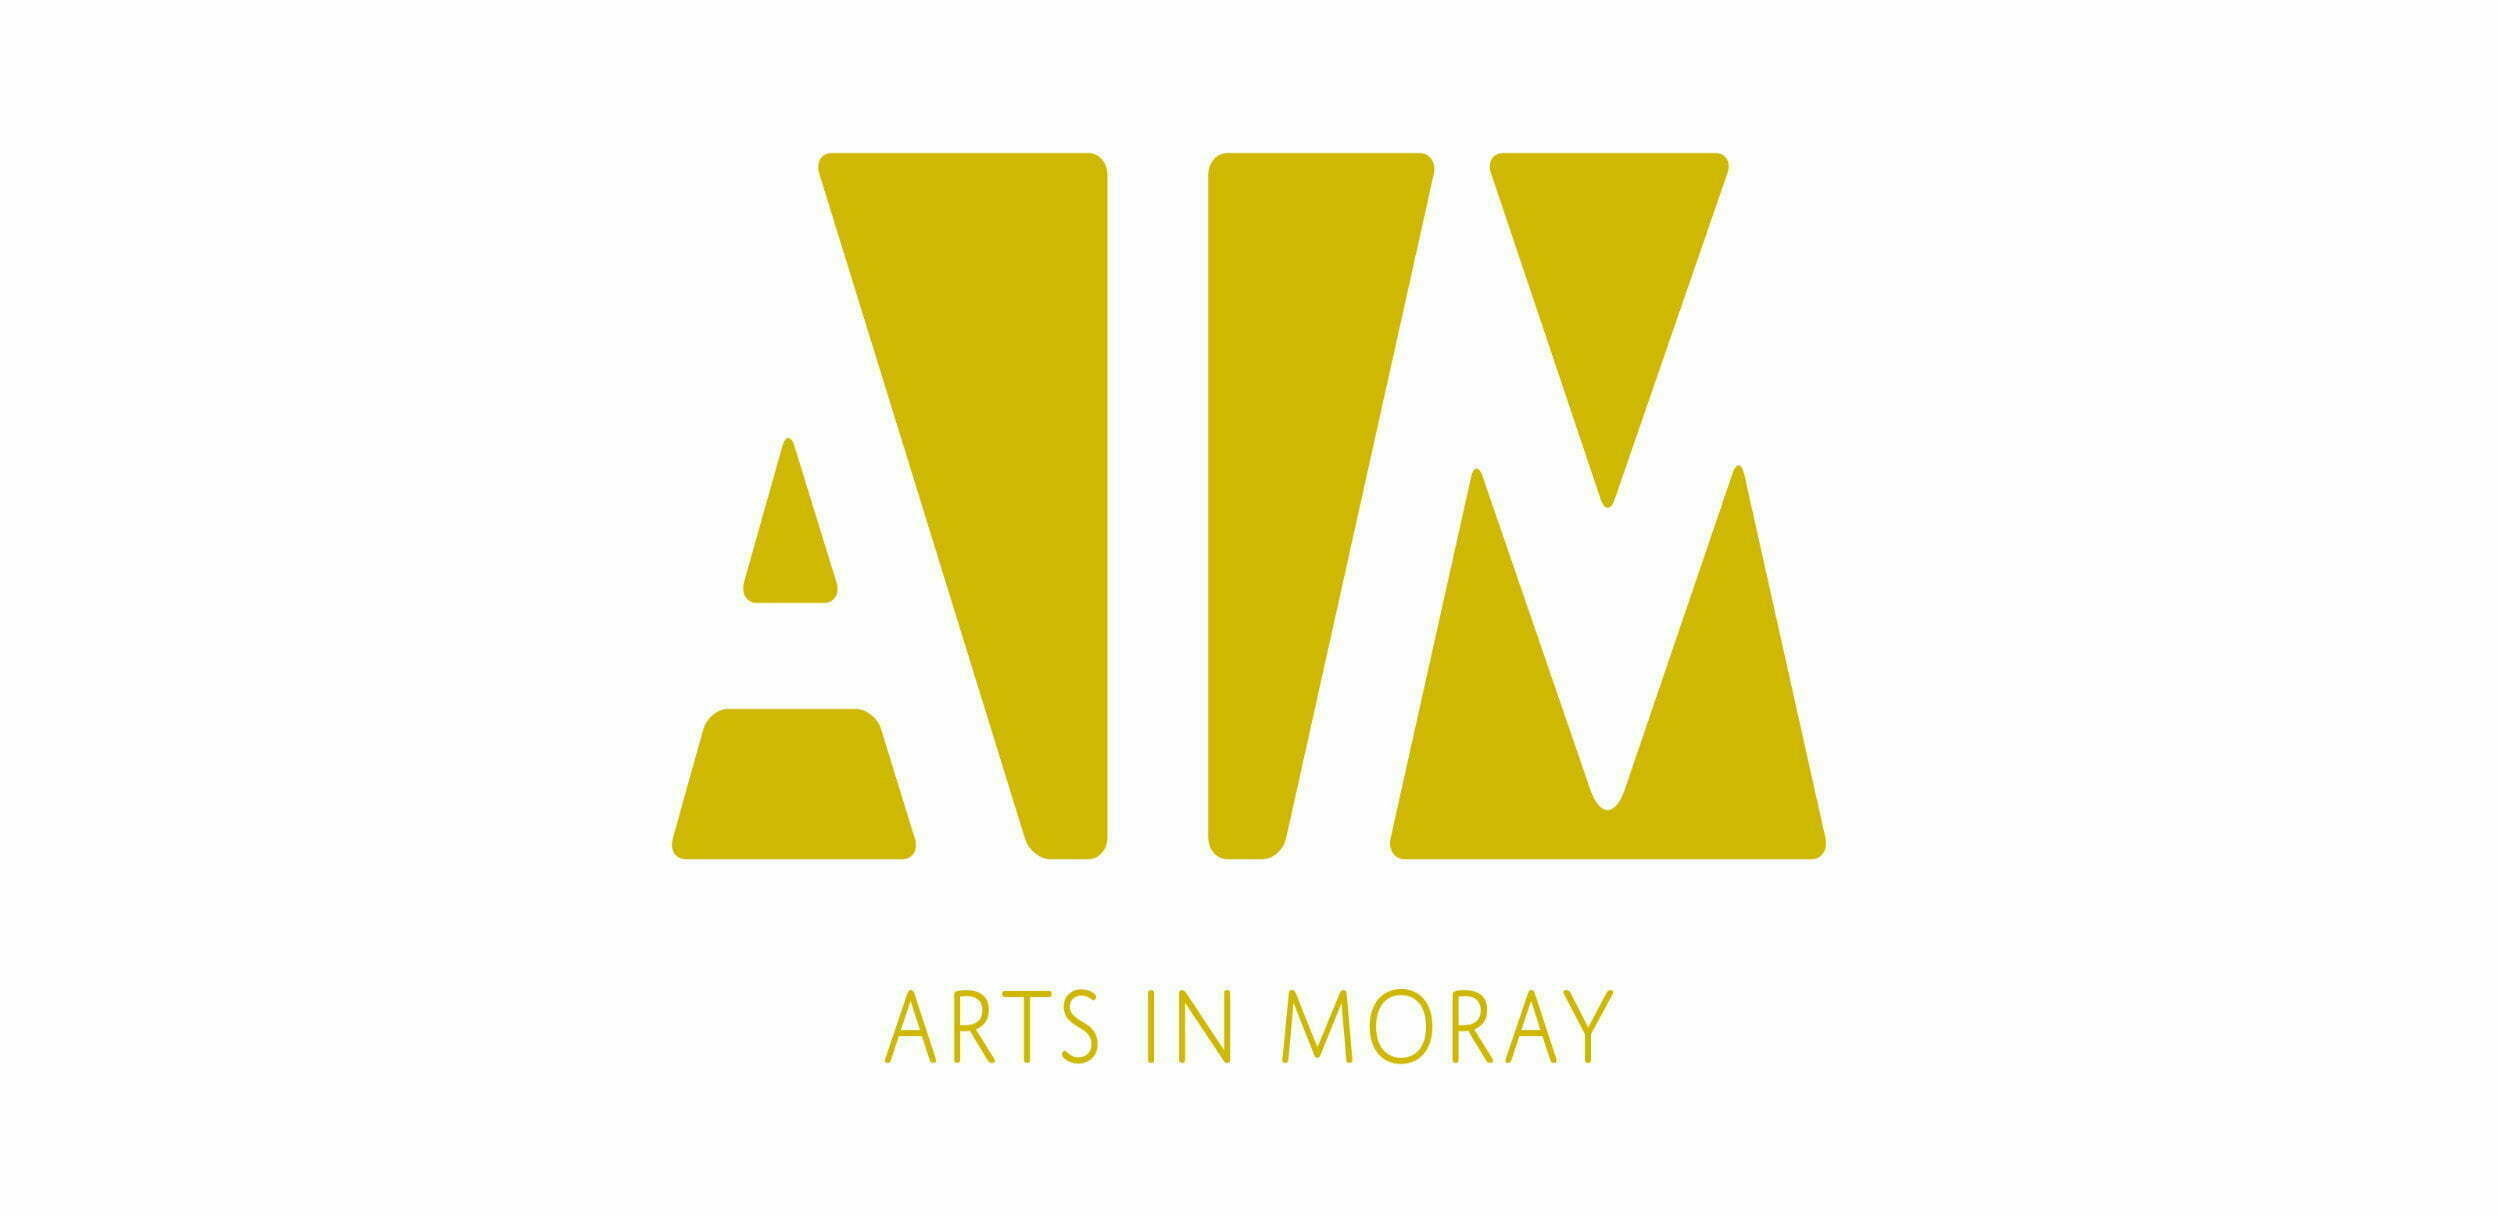 Arts in Moray (AIM) logo in yellow on a white background